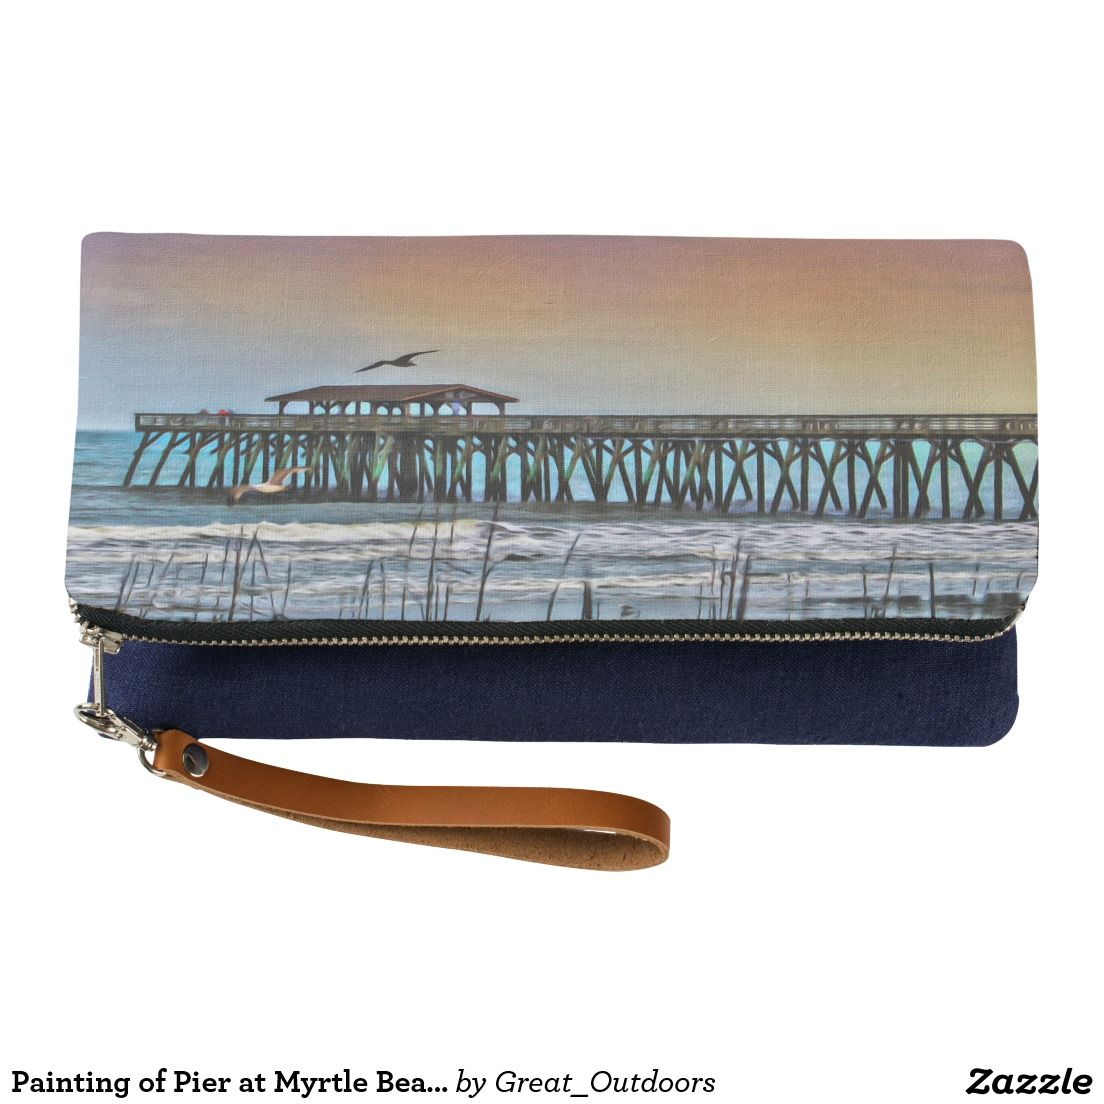 Painting of Pier at Myrtle Beach foldover clutch